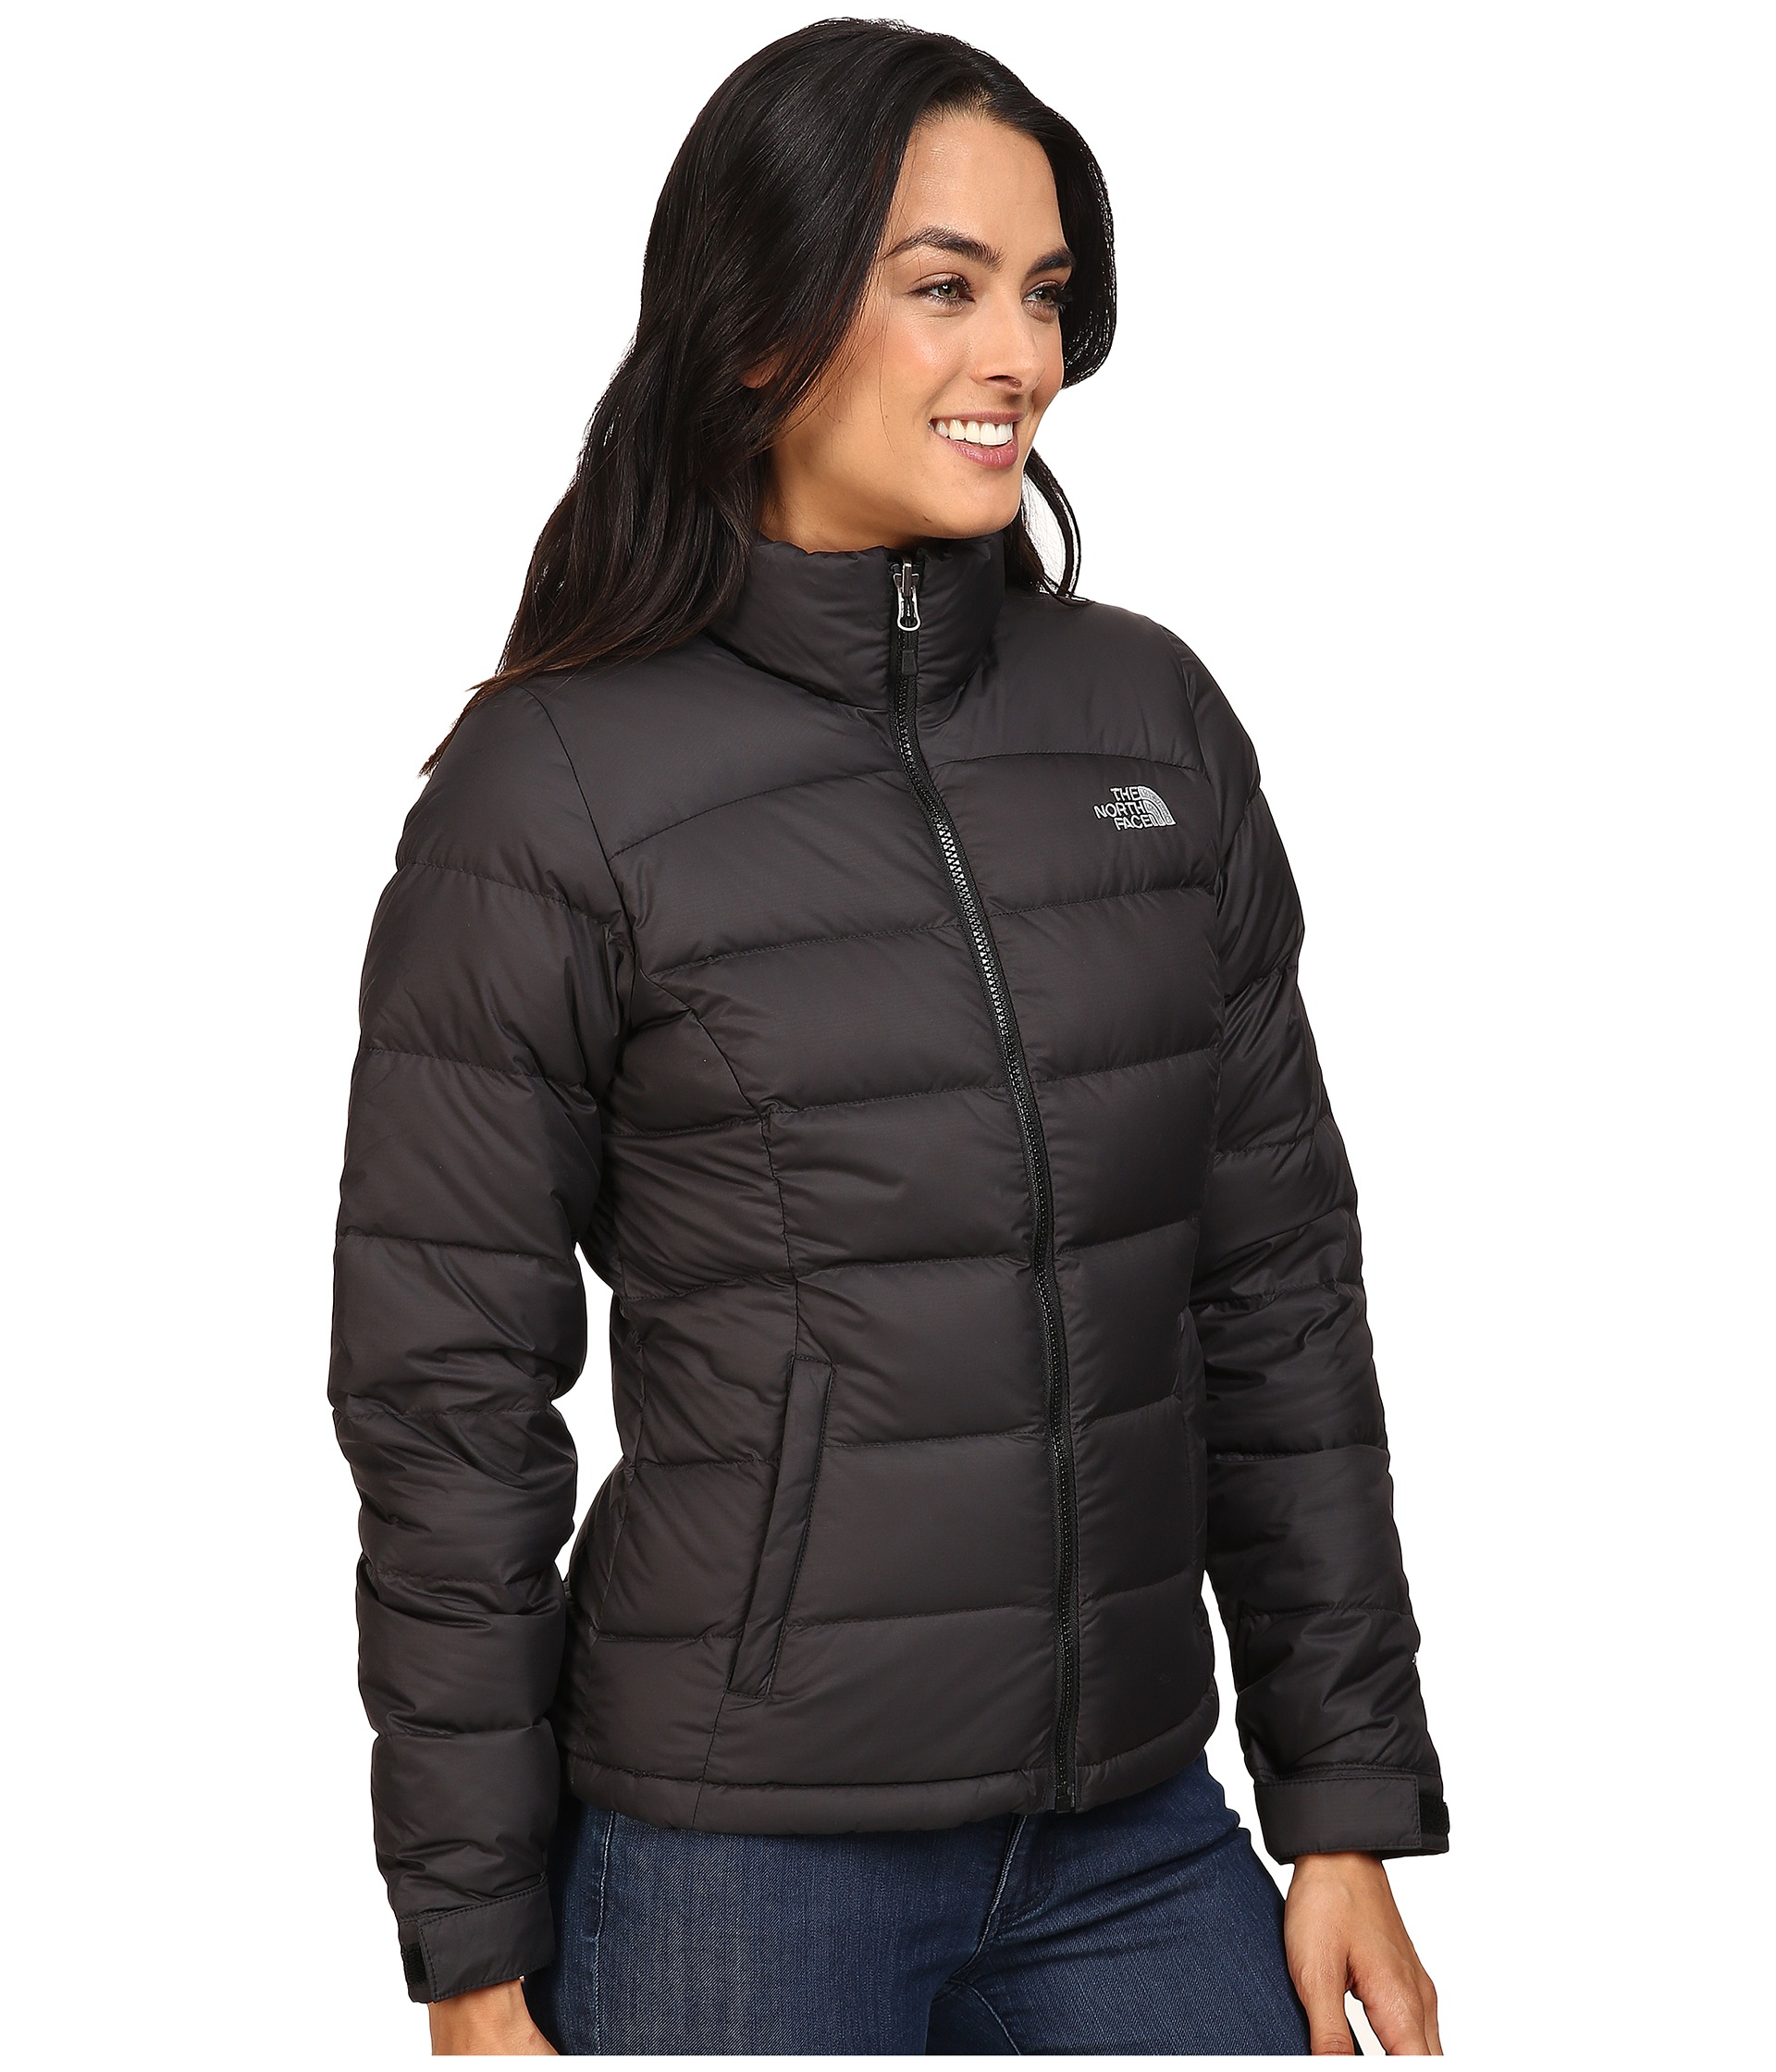 the north face nuptse 2 jacket free shipping. Black Bedroom Furniture Sets. Home Design Ideas